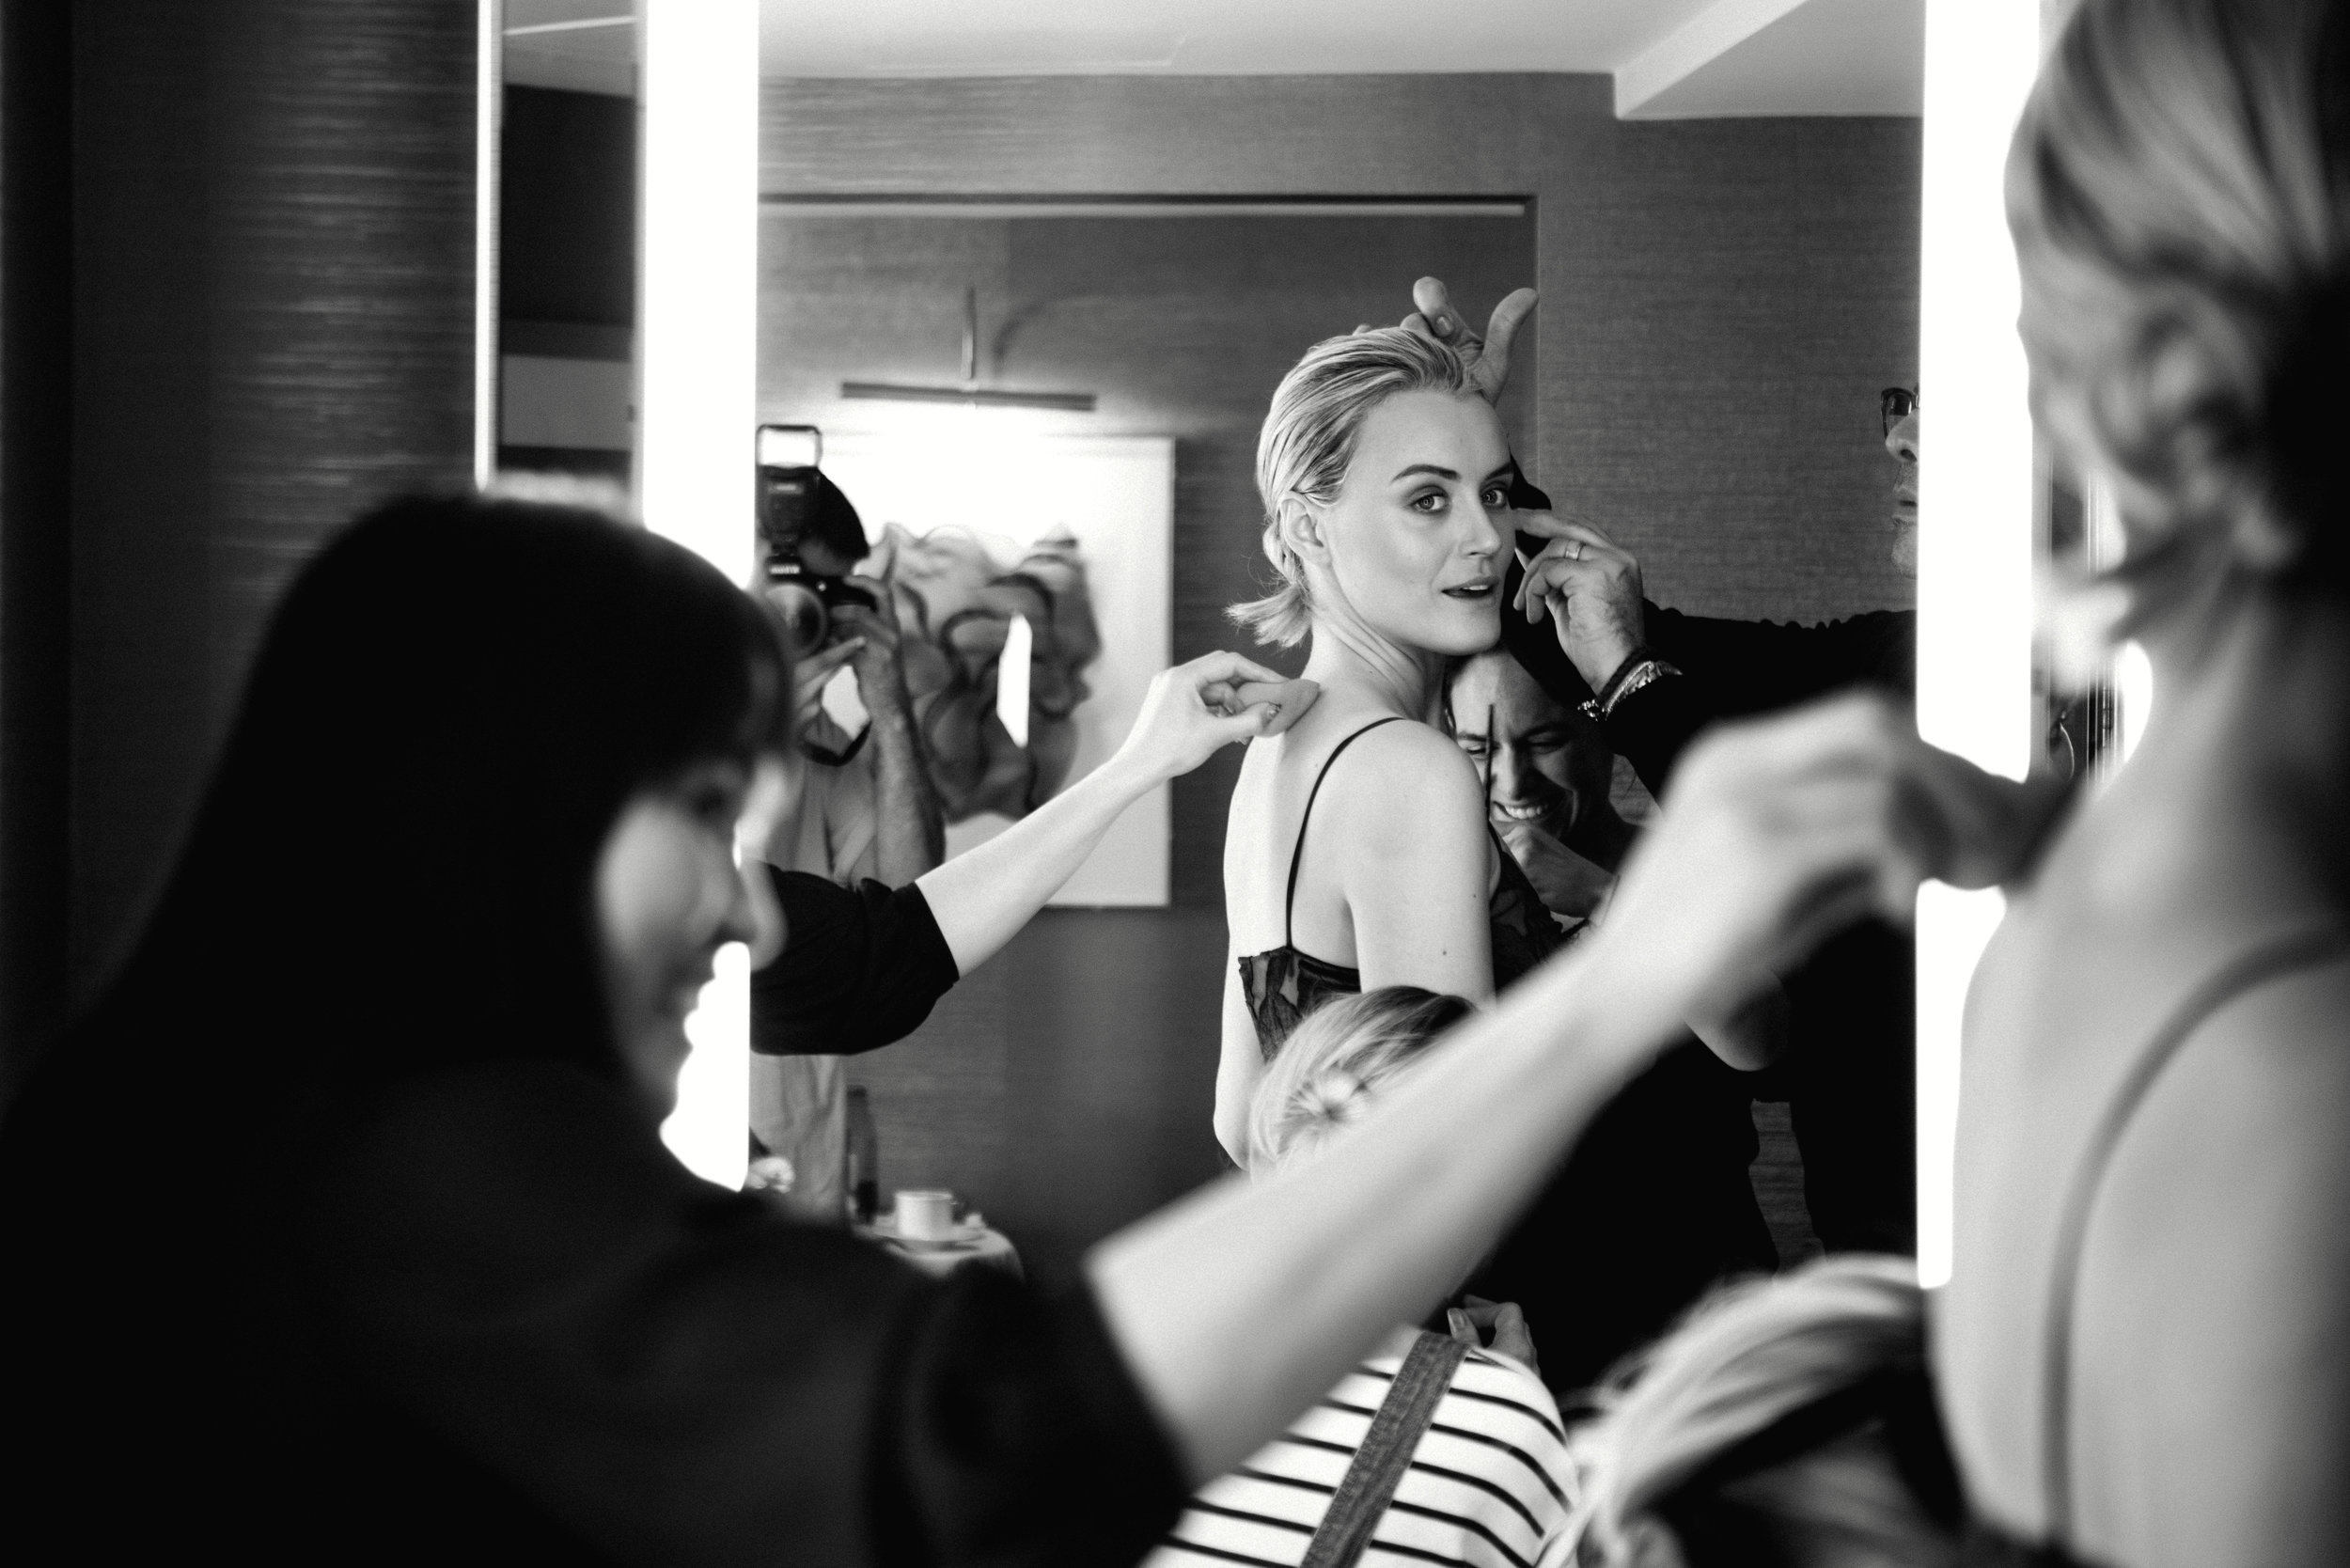 TaylorSchilling_by_AnthonyGoble_1